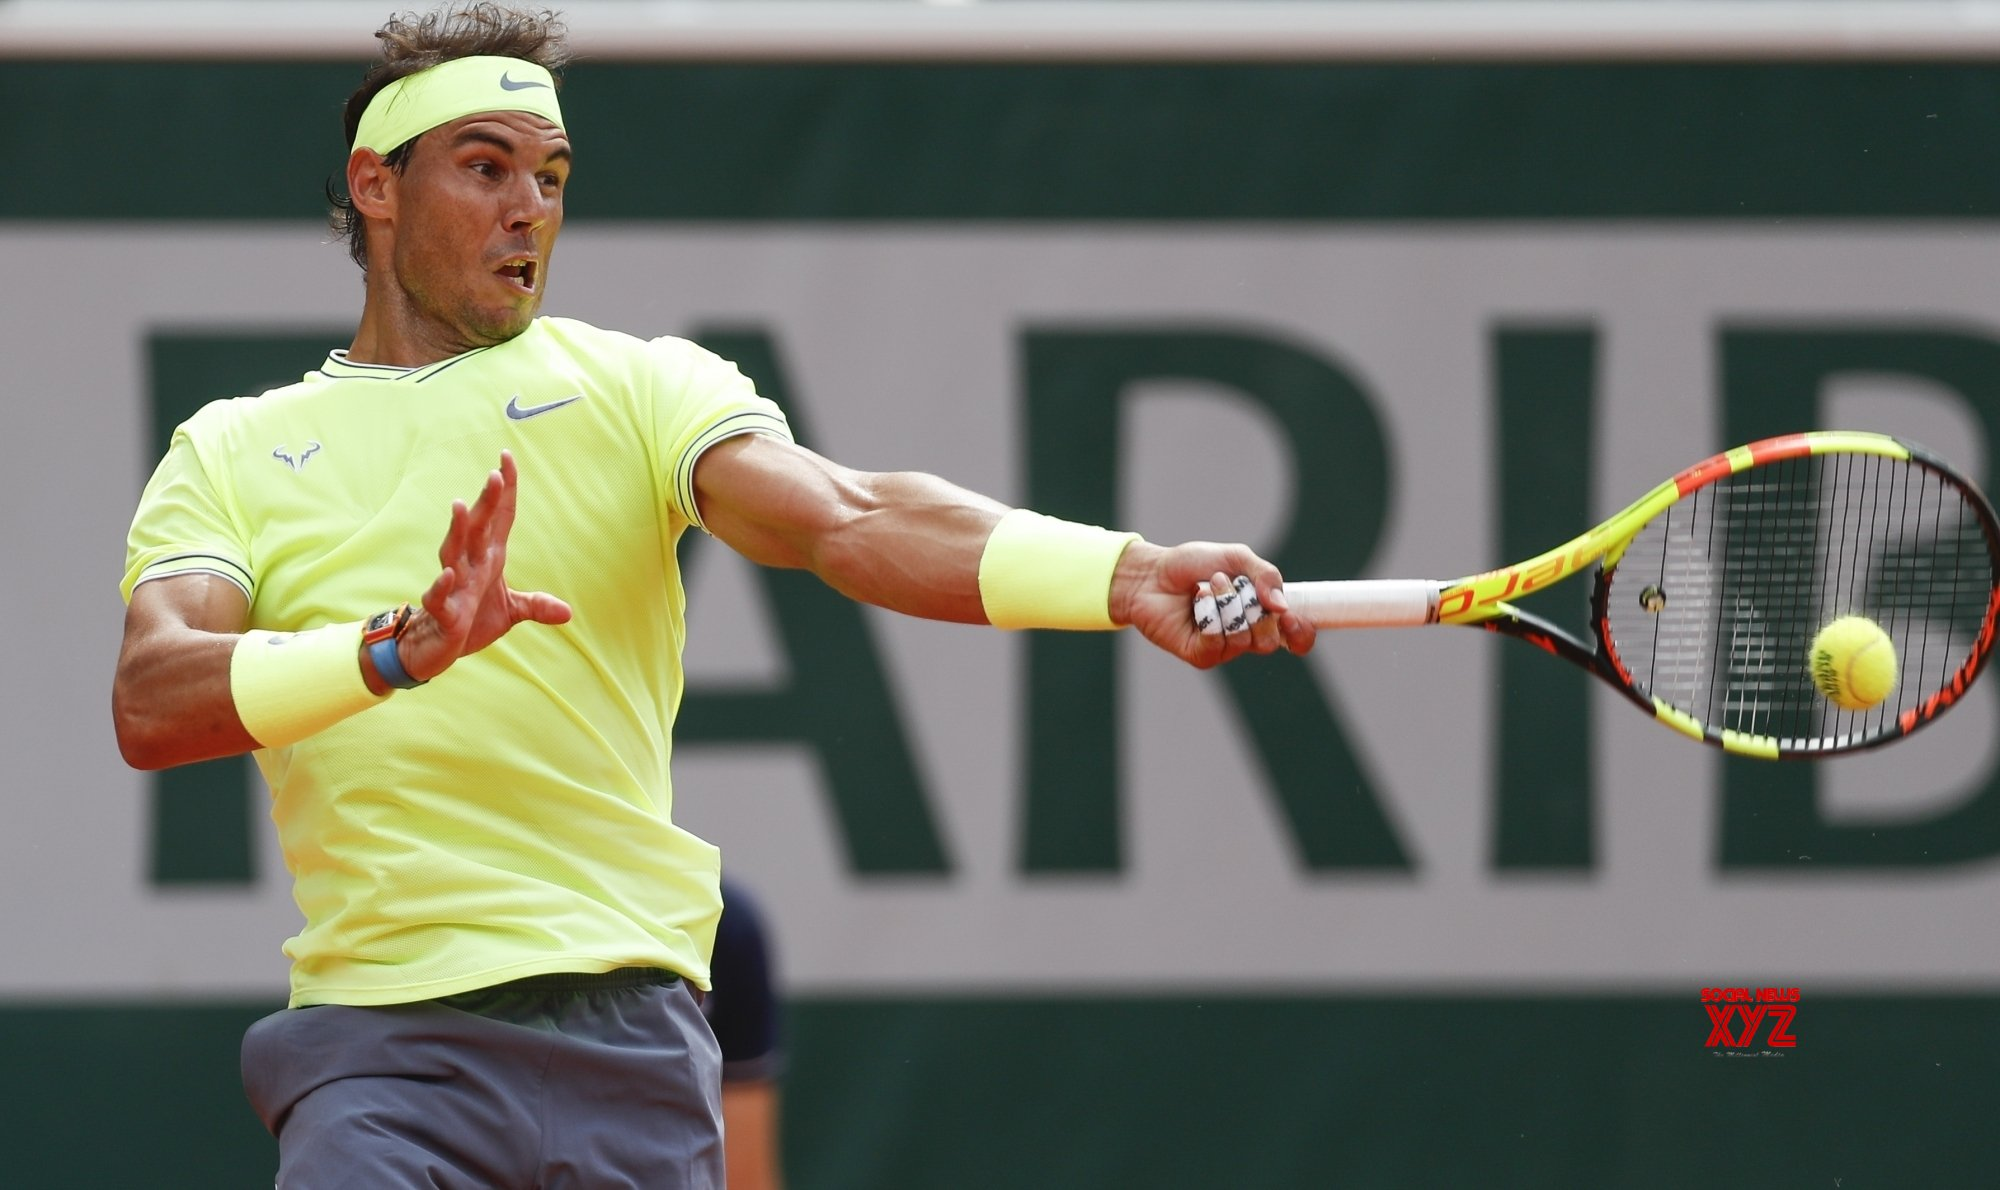 Playing on grass at Wimbledon is radical transition: Nadal